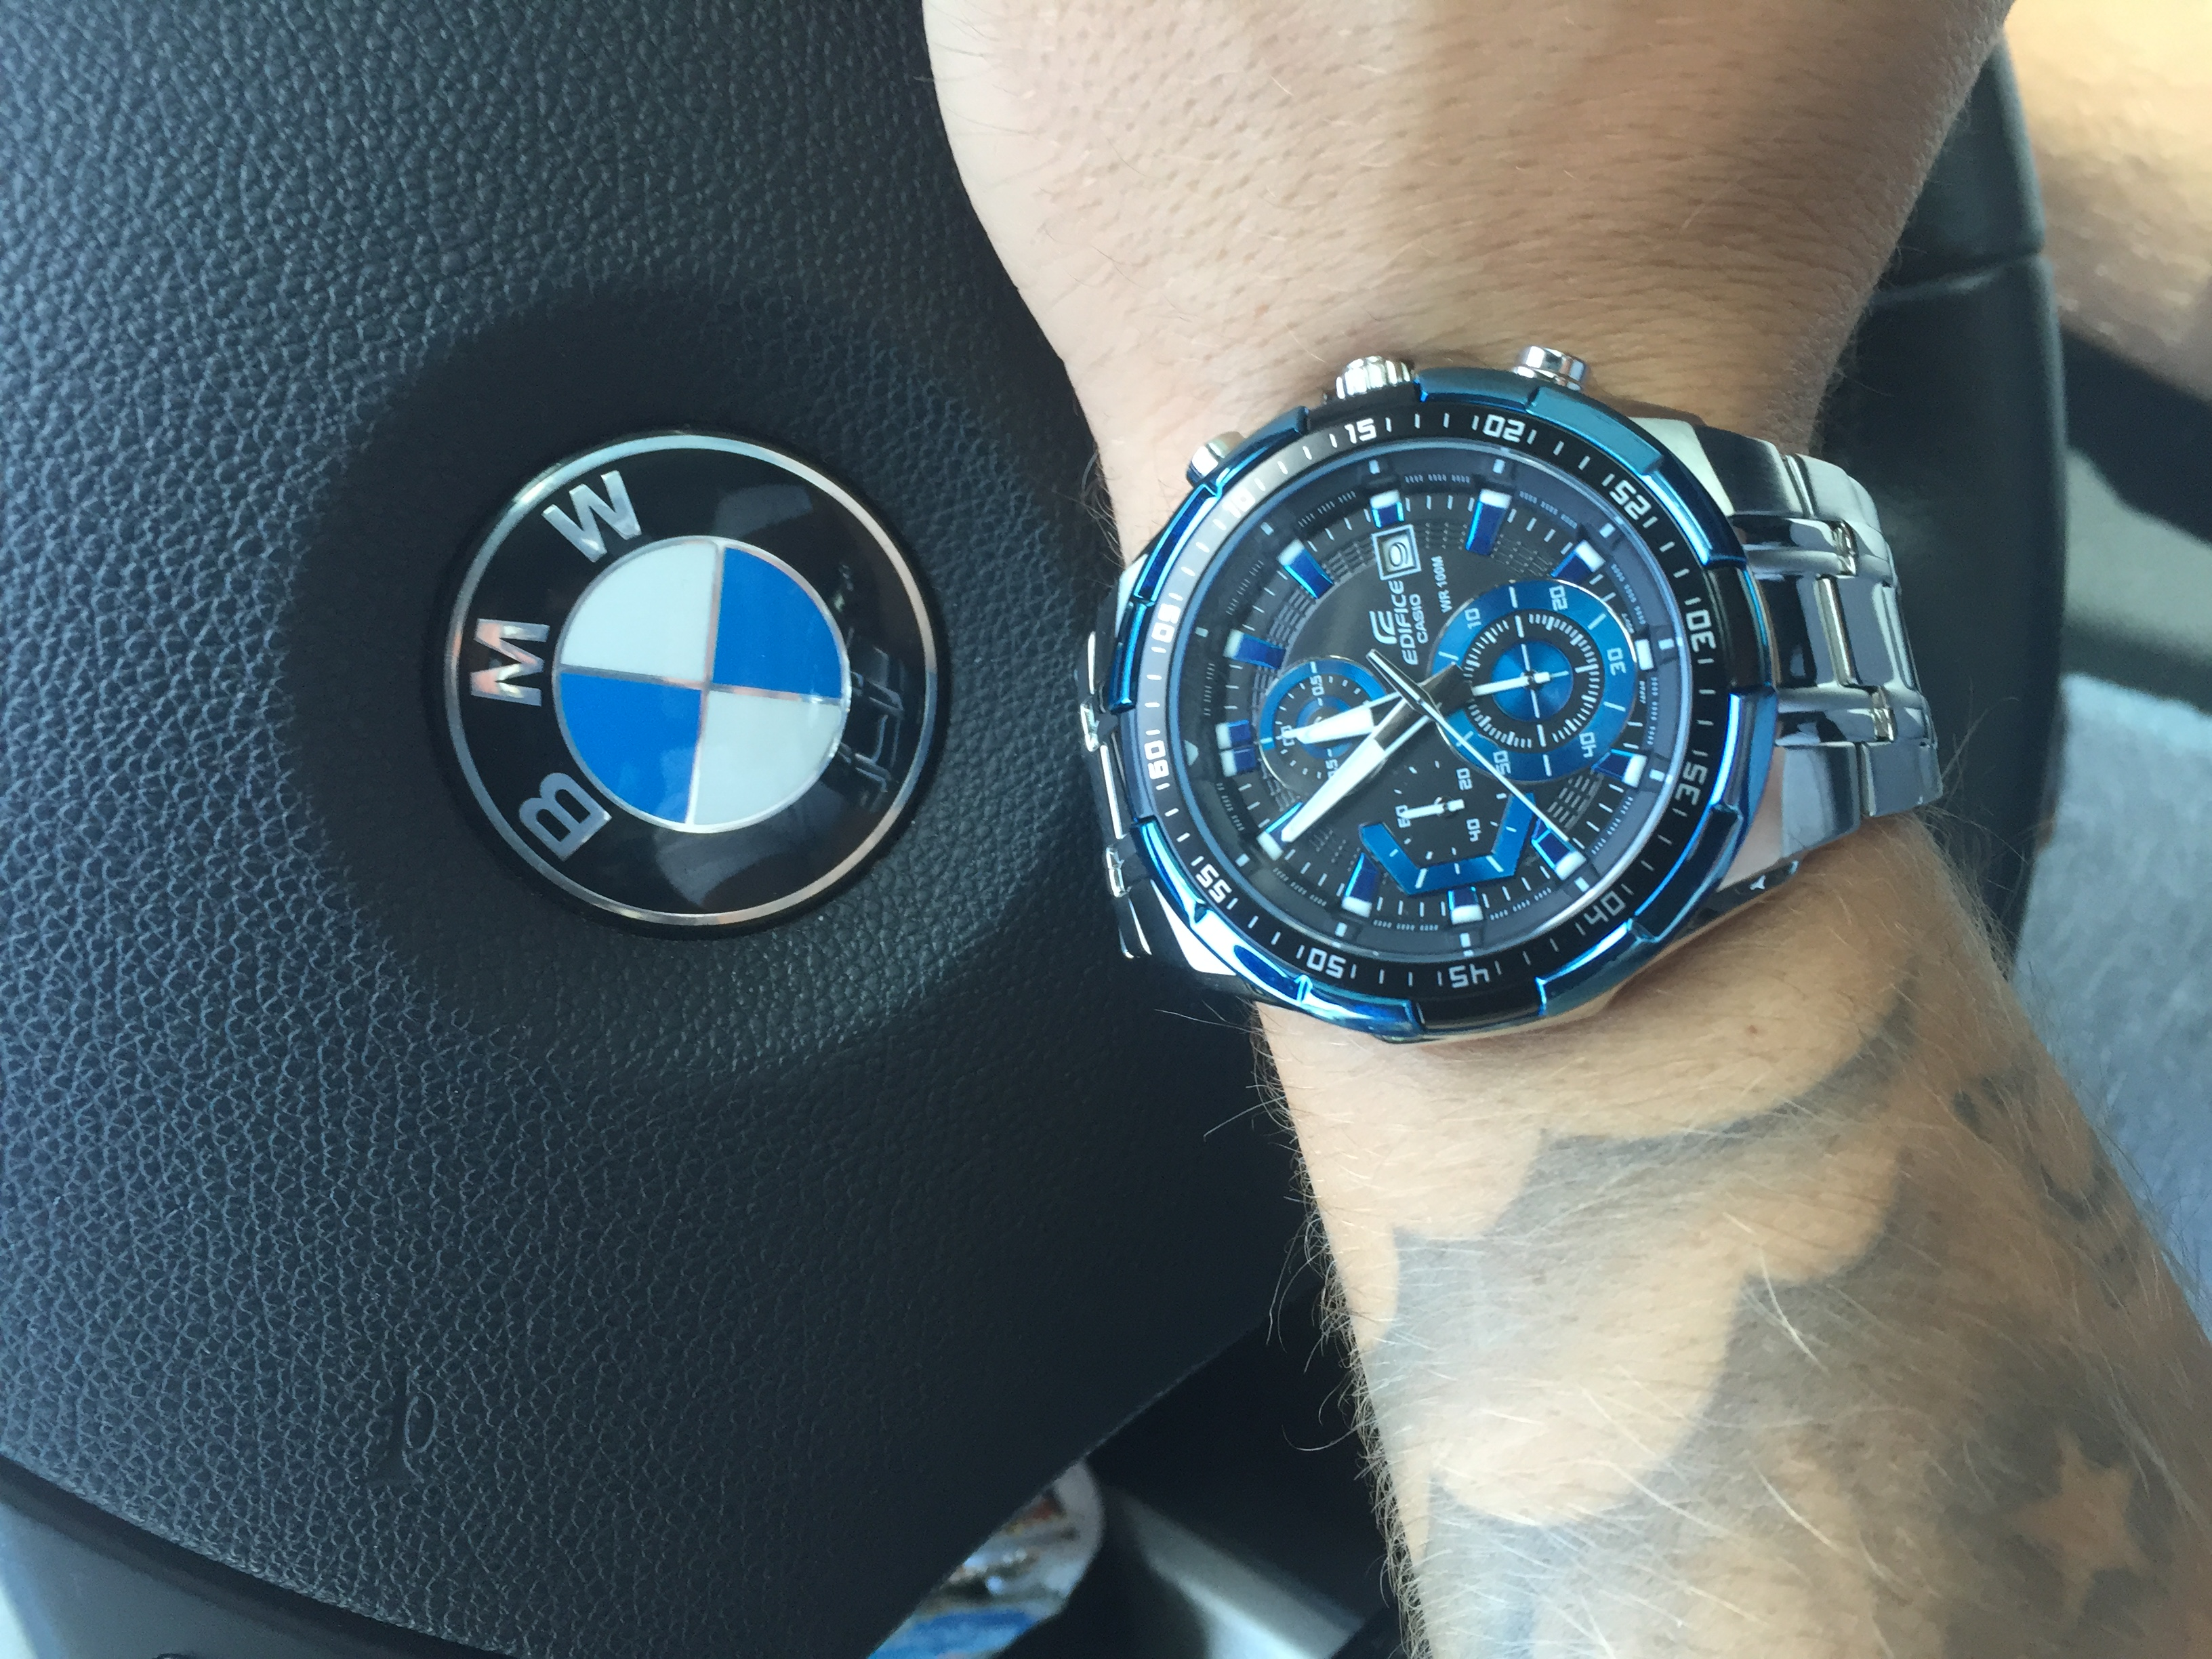 Great watch basic and smart just what I wanted. The blue really sets of the  face nicely! After having a few links taken out fits snugly on my wrist. 6932126b3